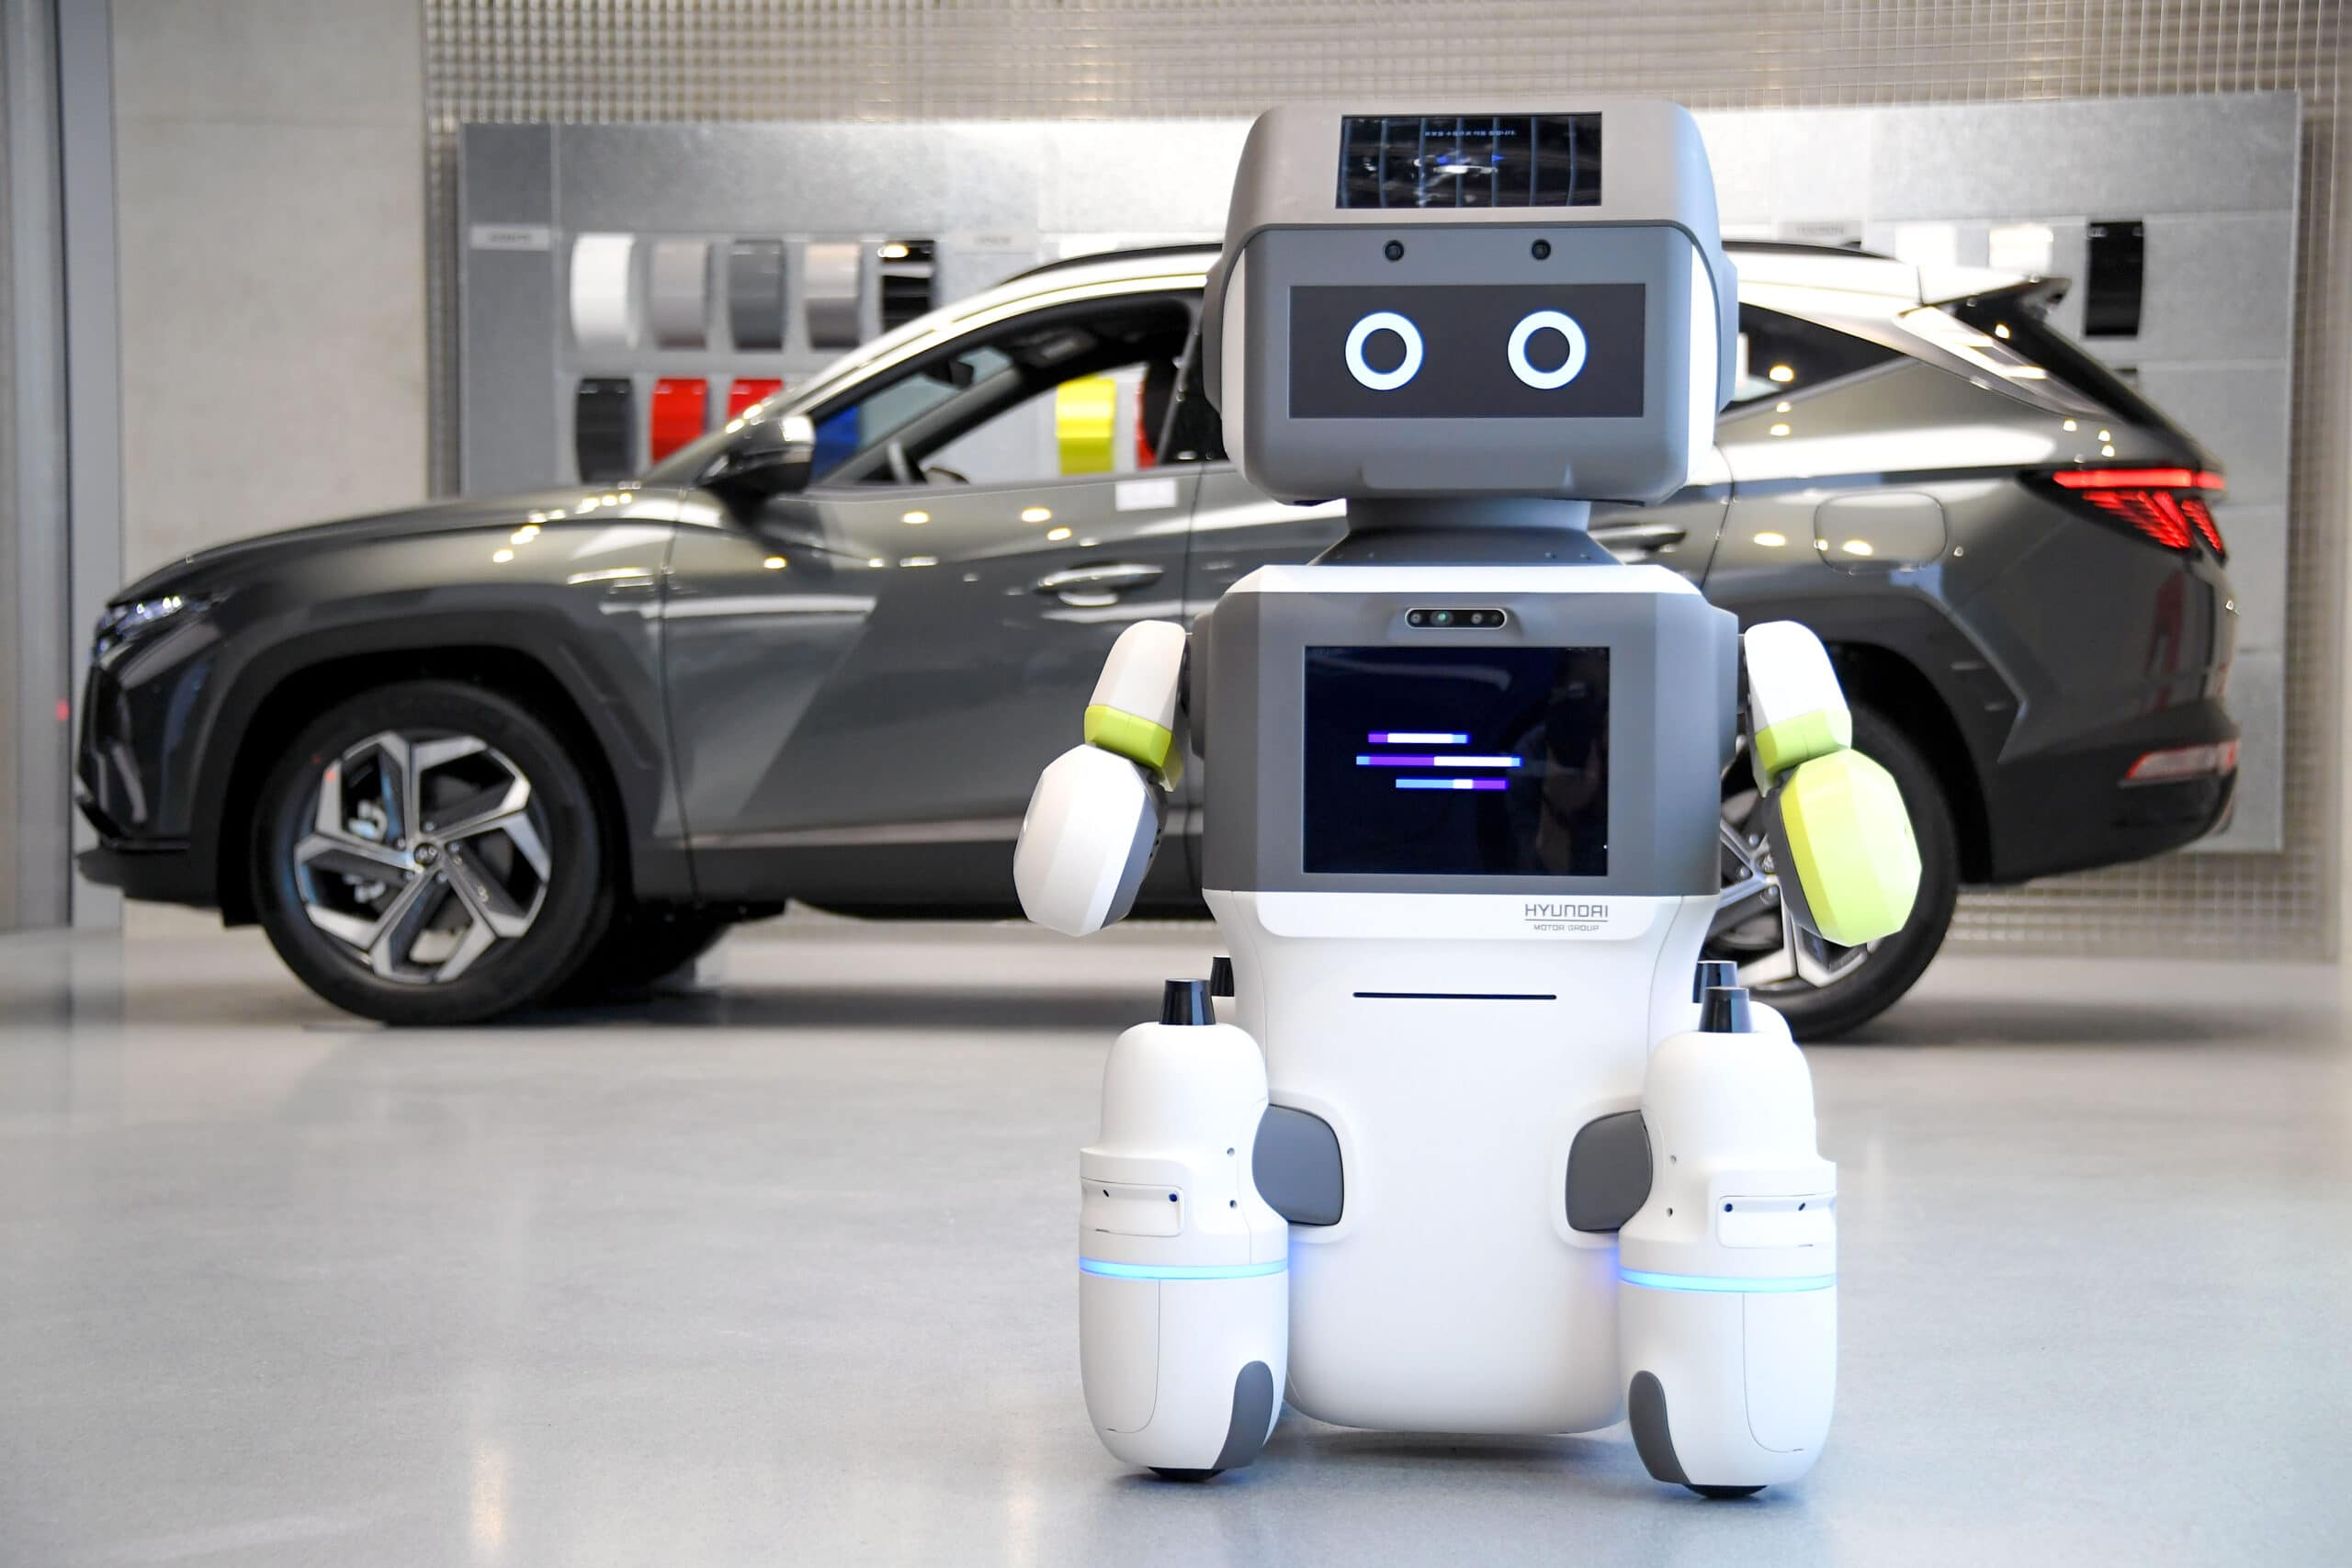 AI-powered robot to offer bespoke customer service at Hyundai showrooms